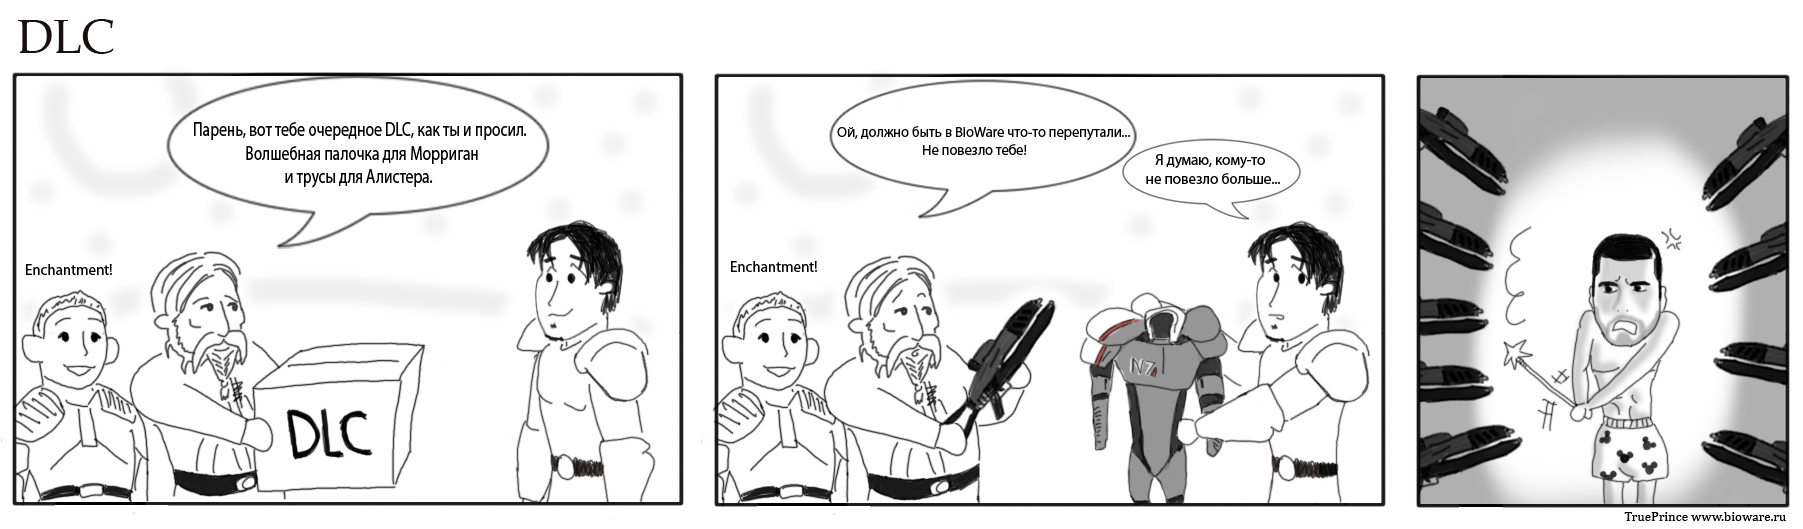 http://www.dragonage-area.ru/modules/Gallery/Files/comics_by_trueprince/05_DLC_TruePrince.jpg